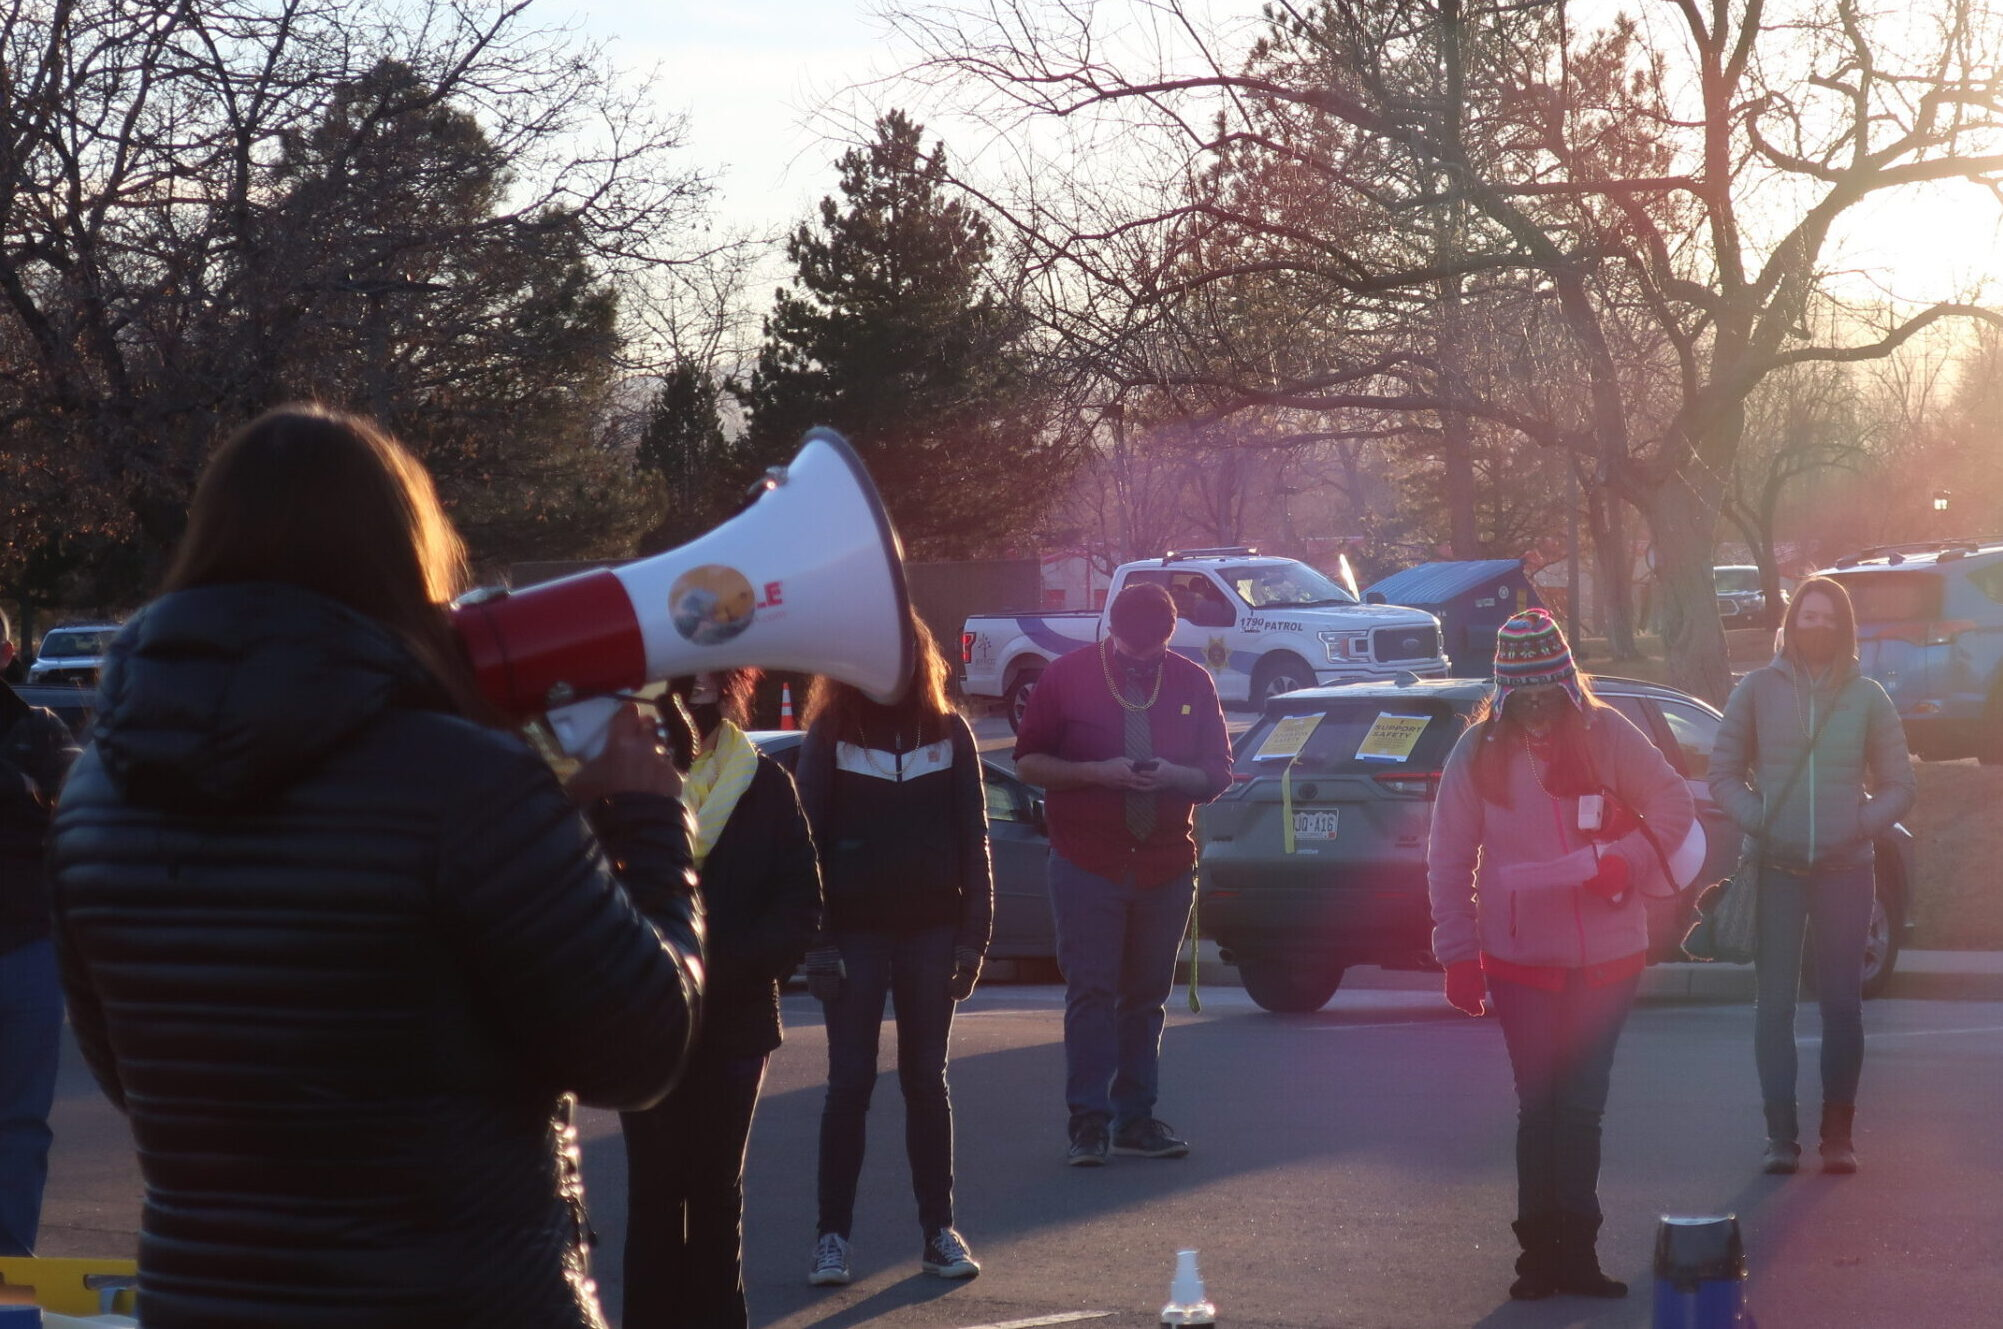 Brooke Williams, president of Jefferson County Education Association, speaks at a teacher protest outside the Jefferson County School District headquarters Wednesday. Teachers are asking the district to postpone in-person learning plans over COVID-19 safety concerns.